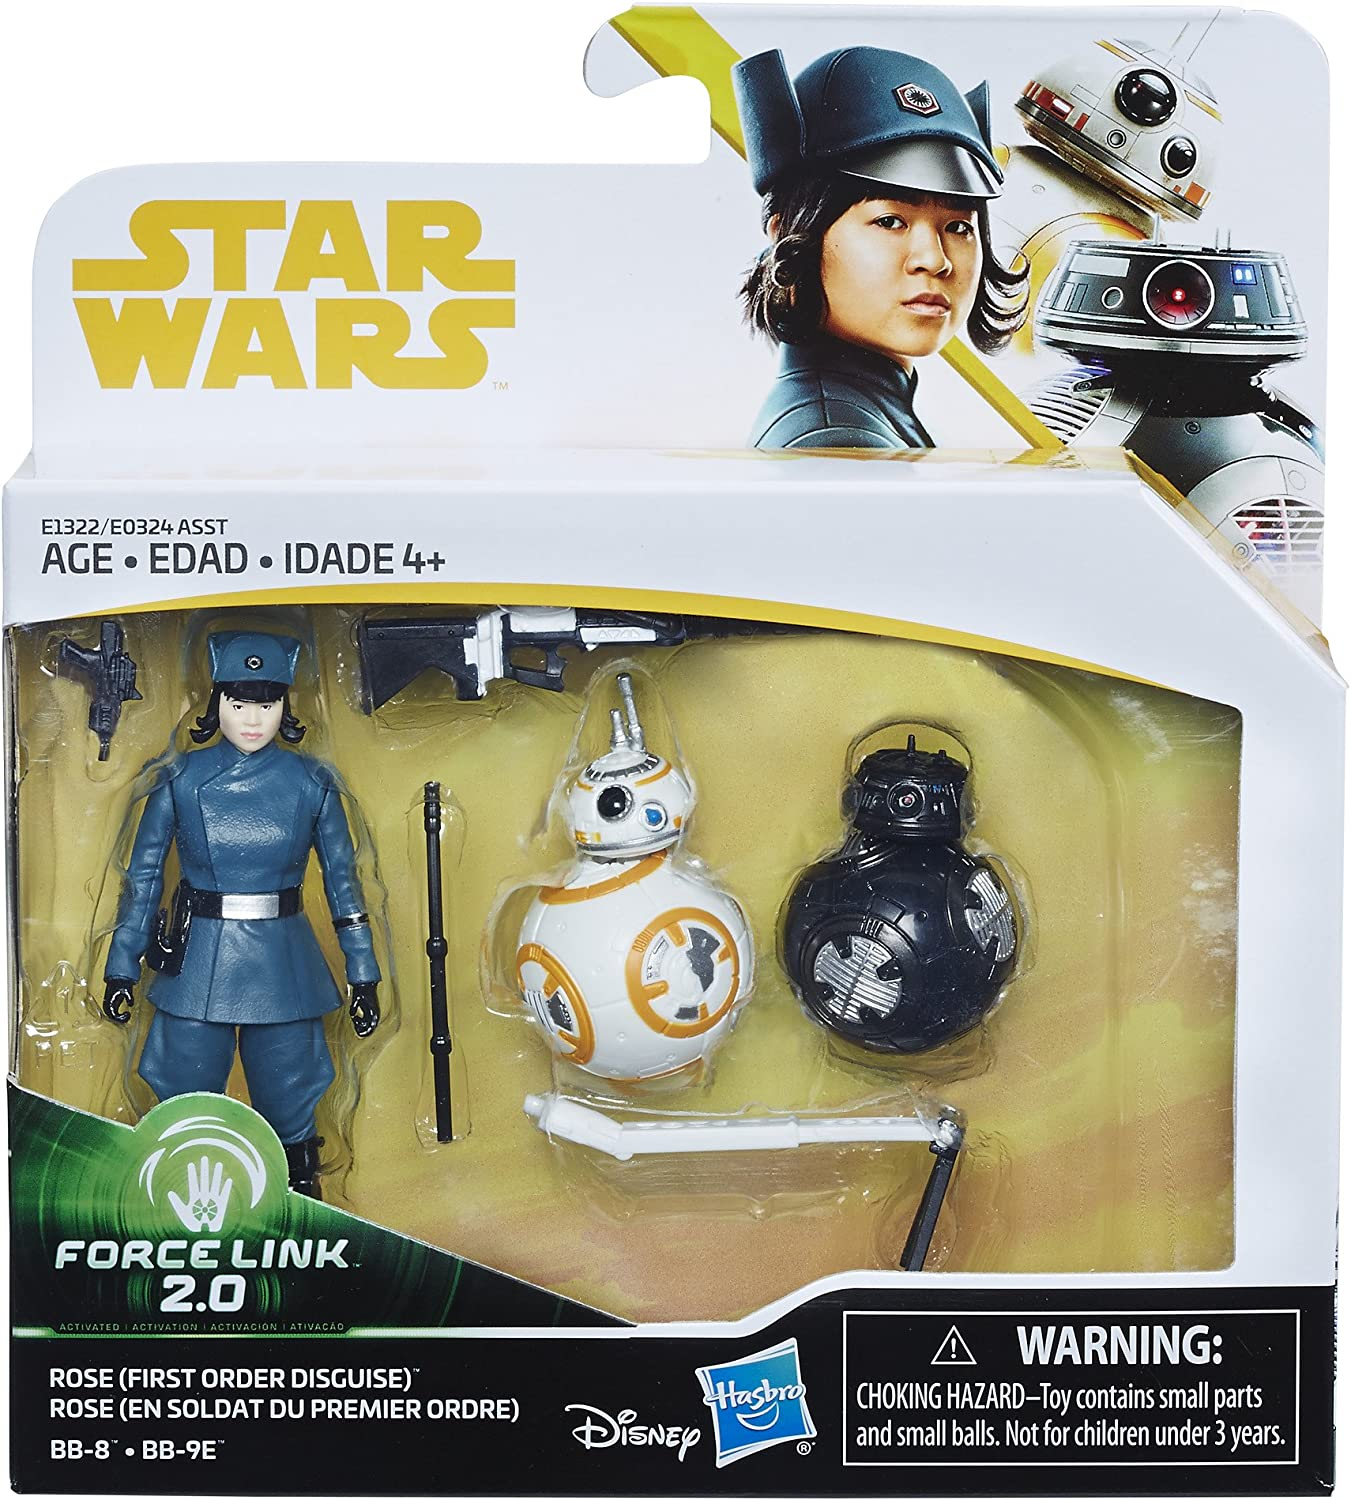 FINN First Order Disguise VS PHASMA Star Wars The Last Jedi Action Figure 2-Pack